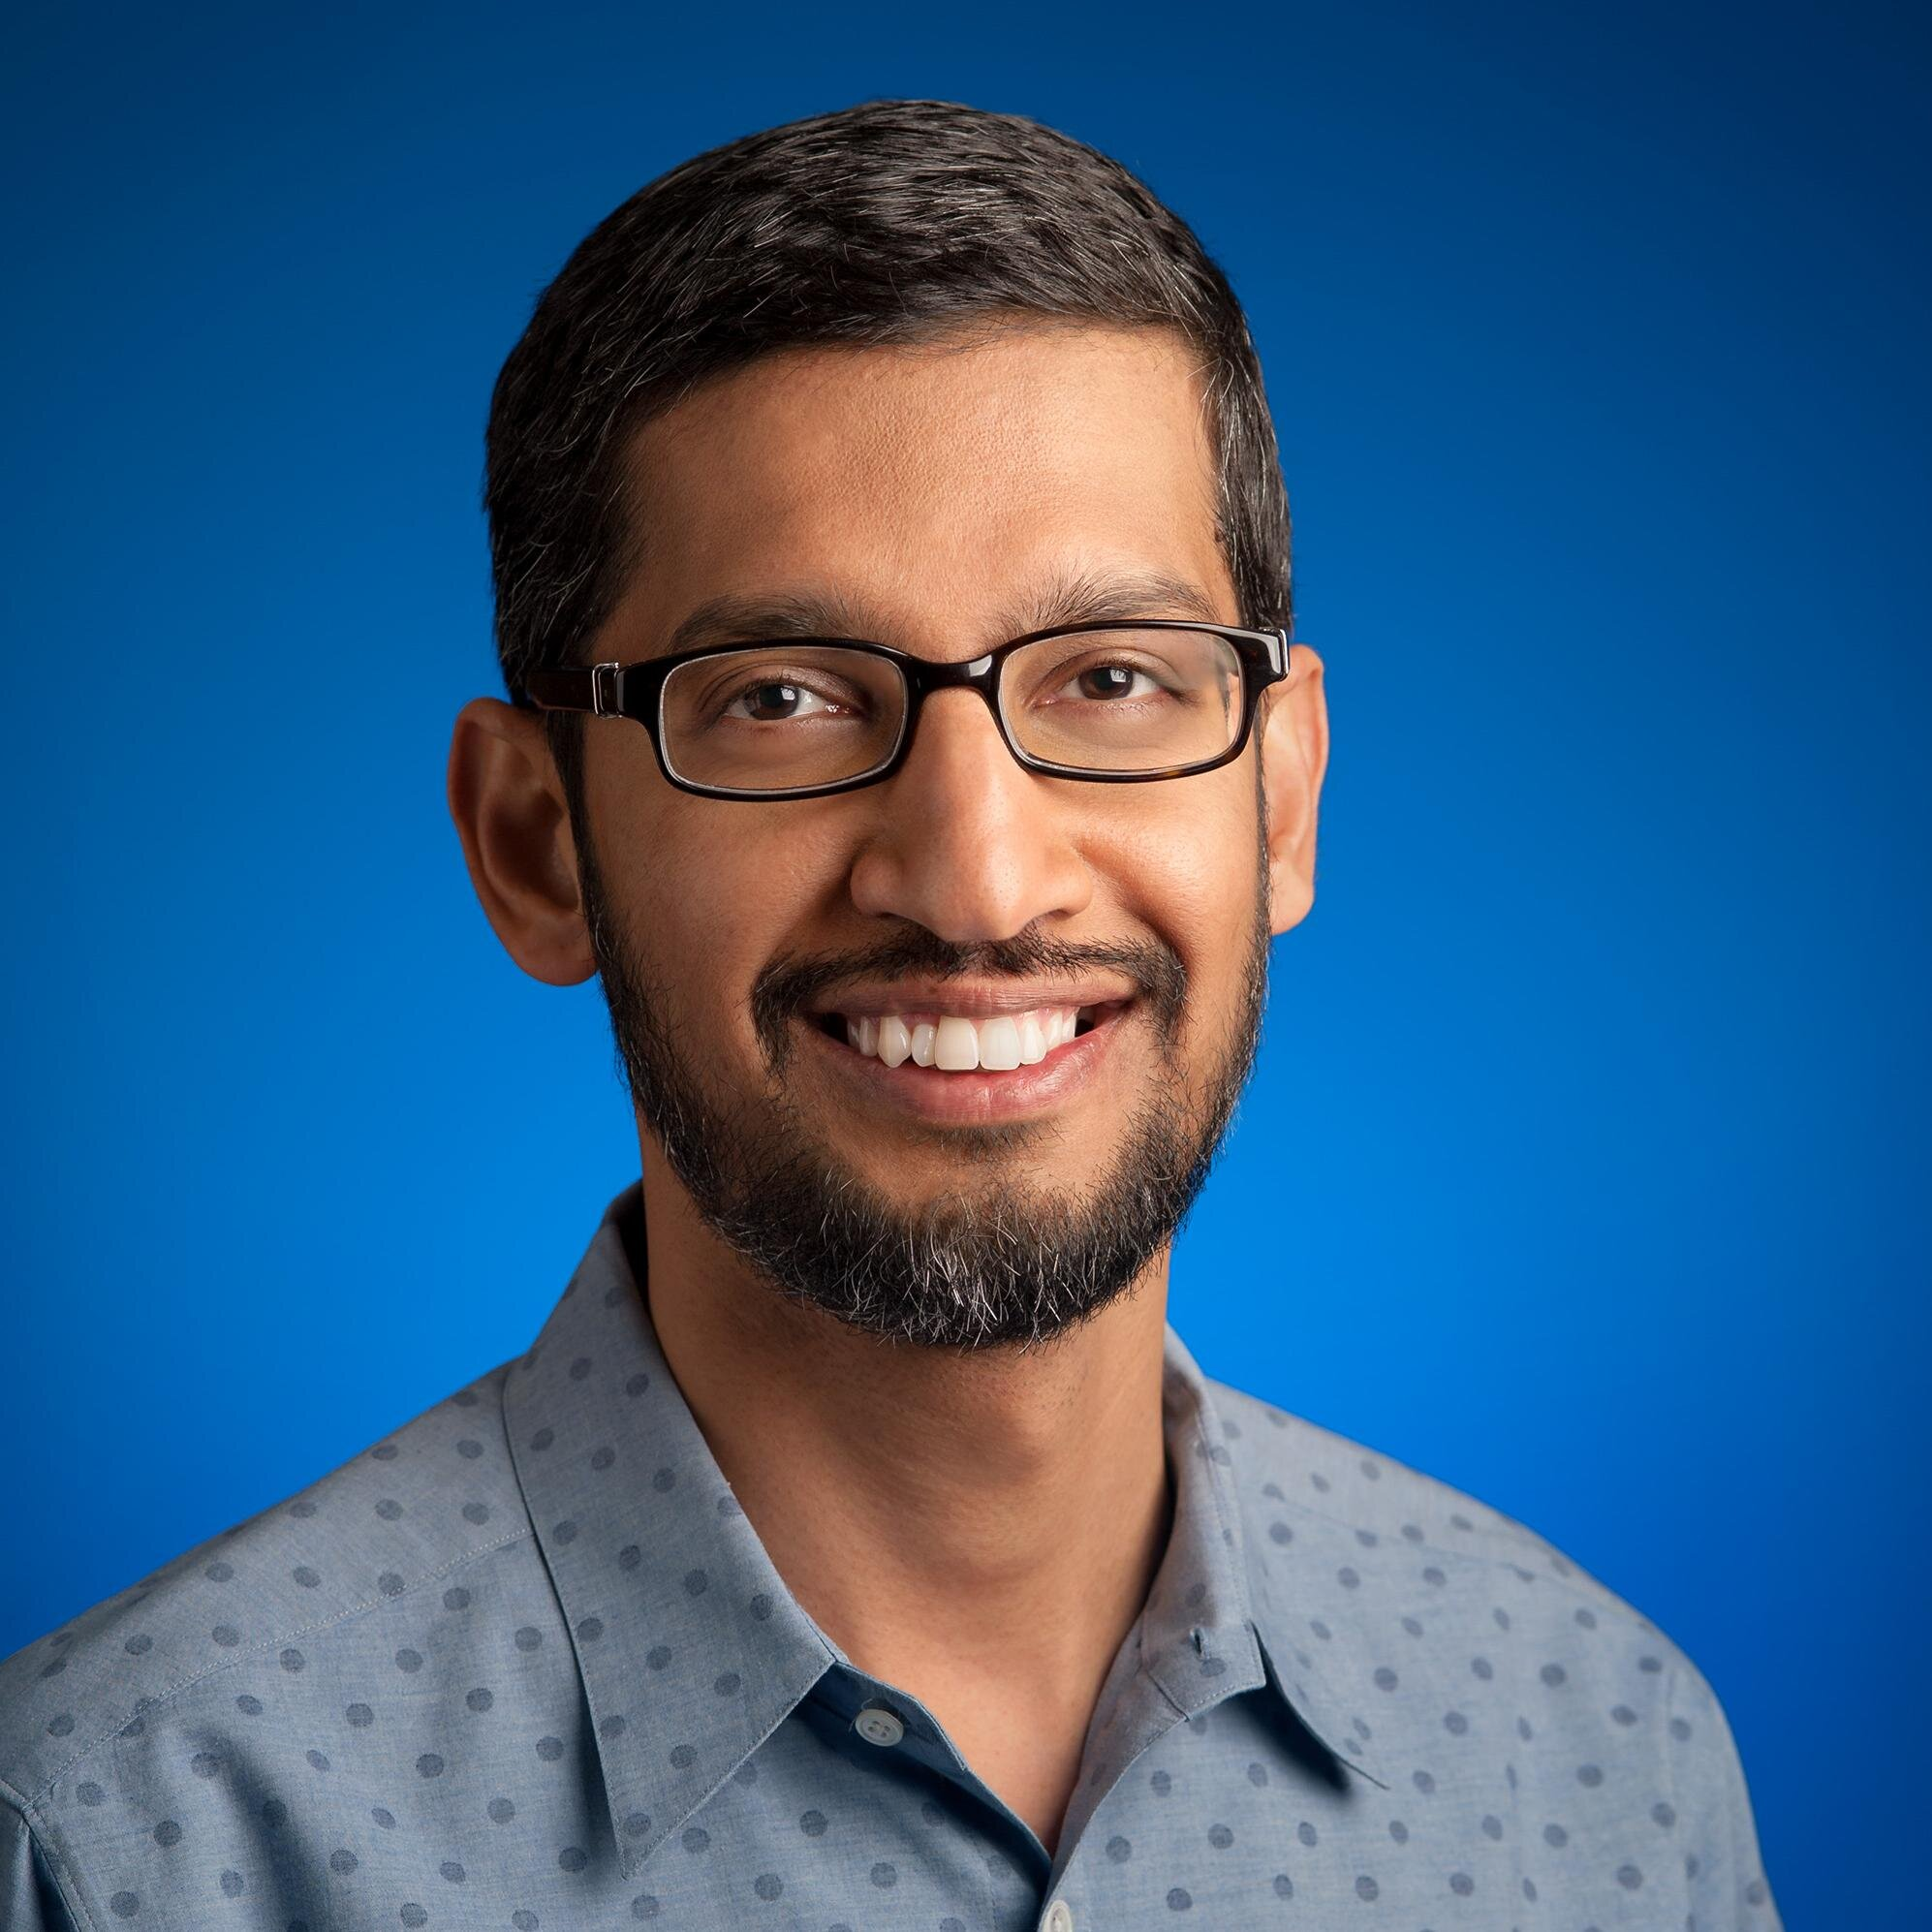 Google's CEO Indian-American Sundar Pichai